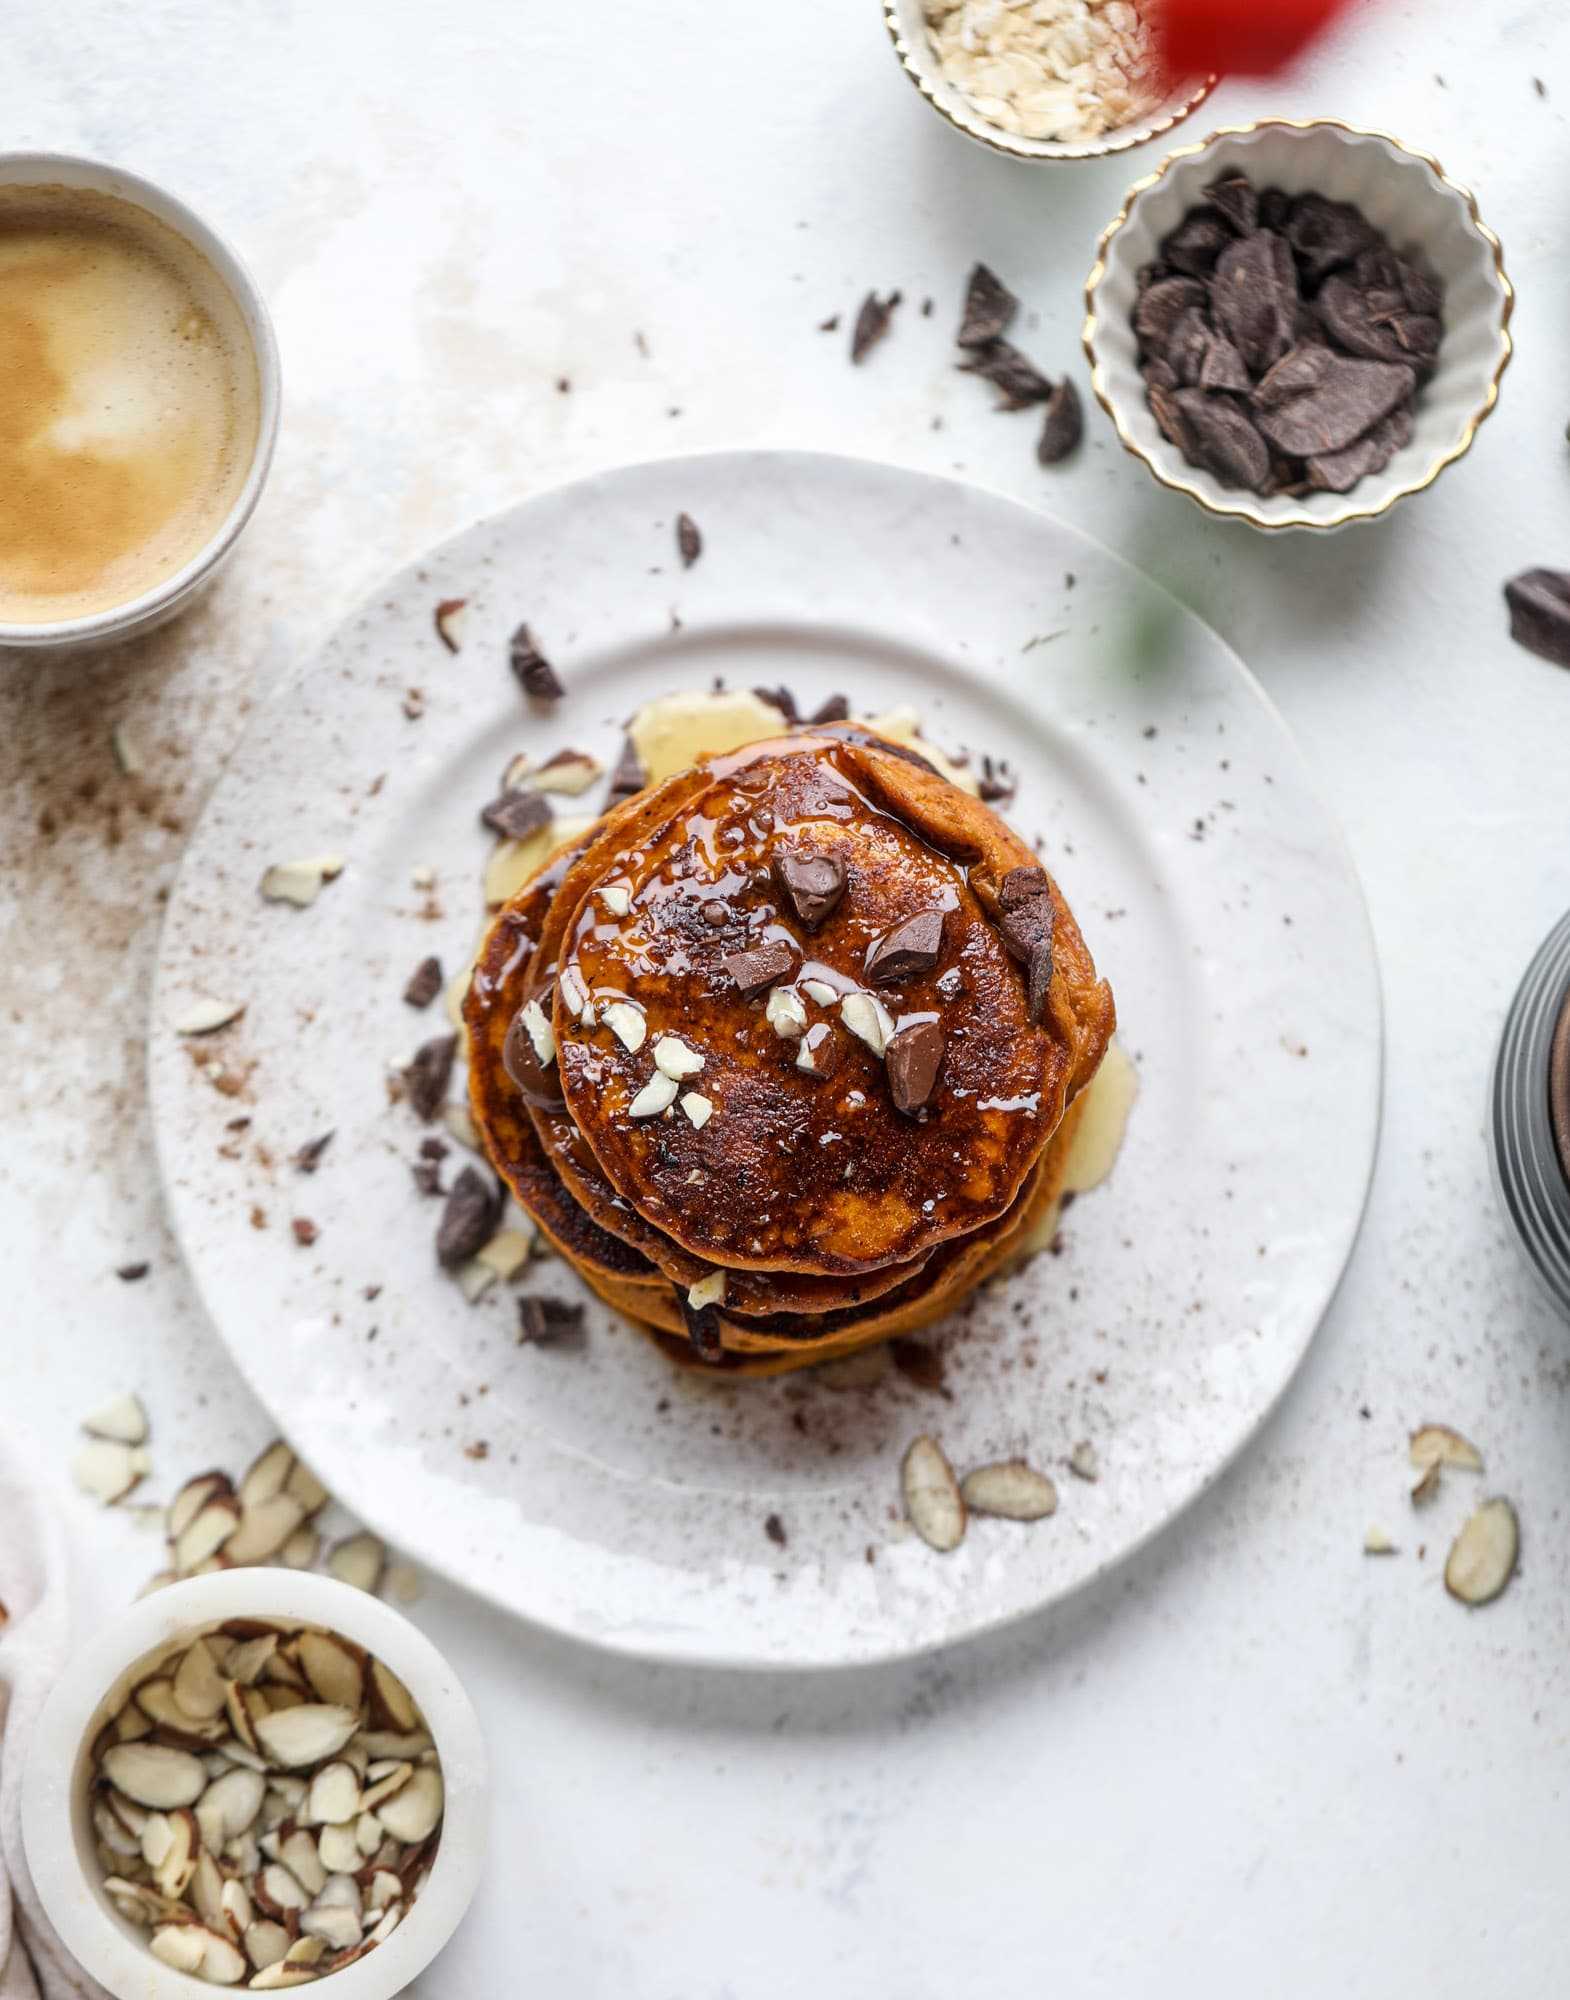 These pumpkin protein pancakes are packed with delicious ingredients to make a healthy and satisfying fall breakfast! They are super easy - you throw everything into a blender to create the most incredible protein pancakes! I howsweeteats.com #protein #pancakes #pumpkin #breakfast #fall